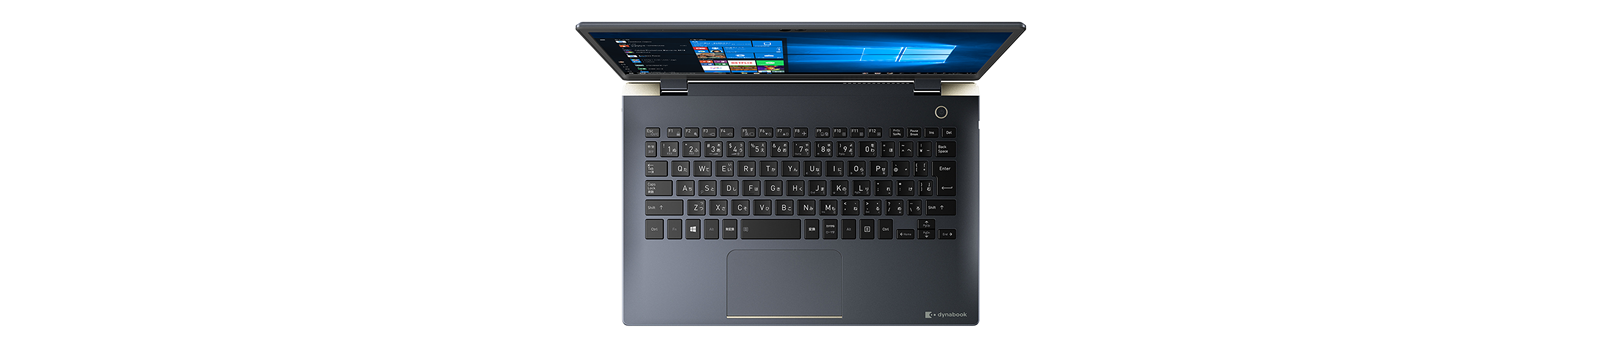 TOSHIBA dynabook G banner